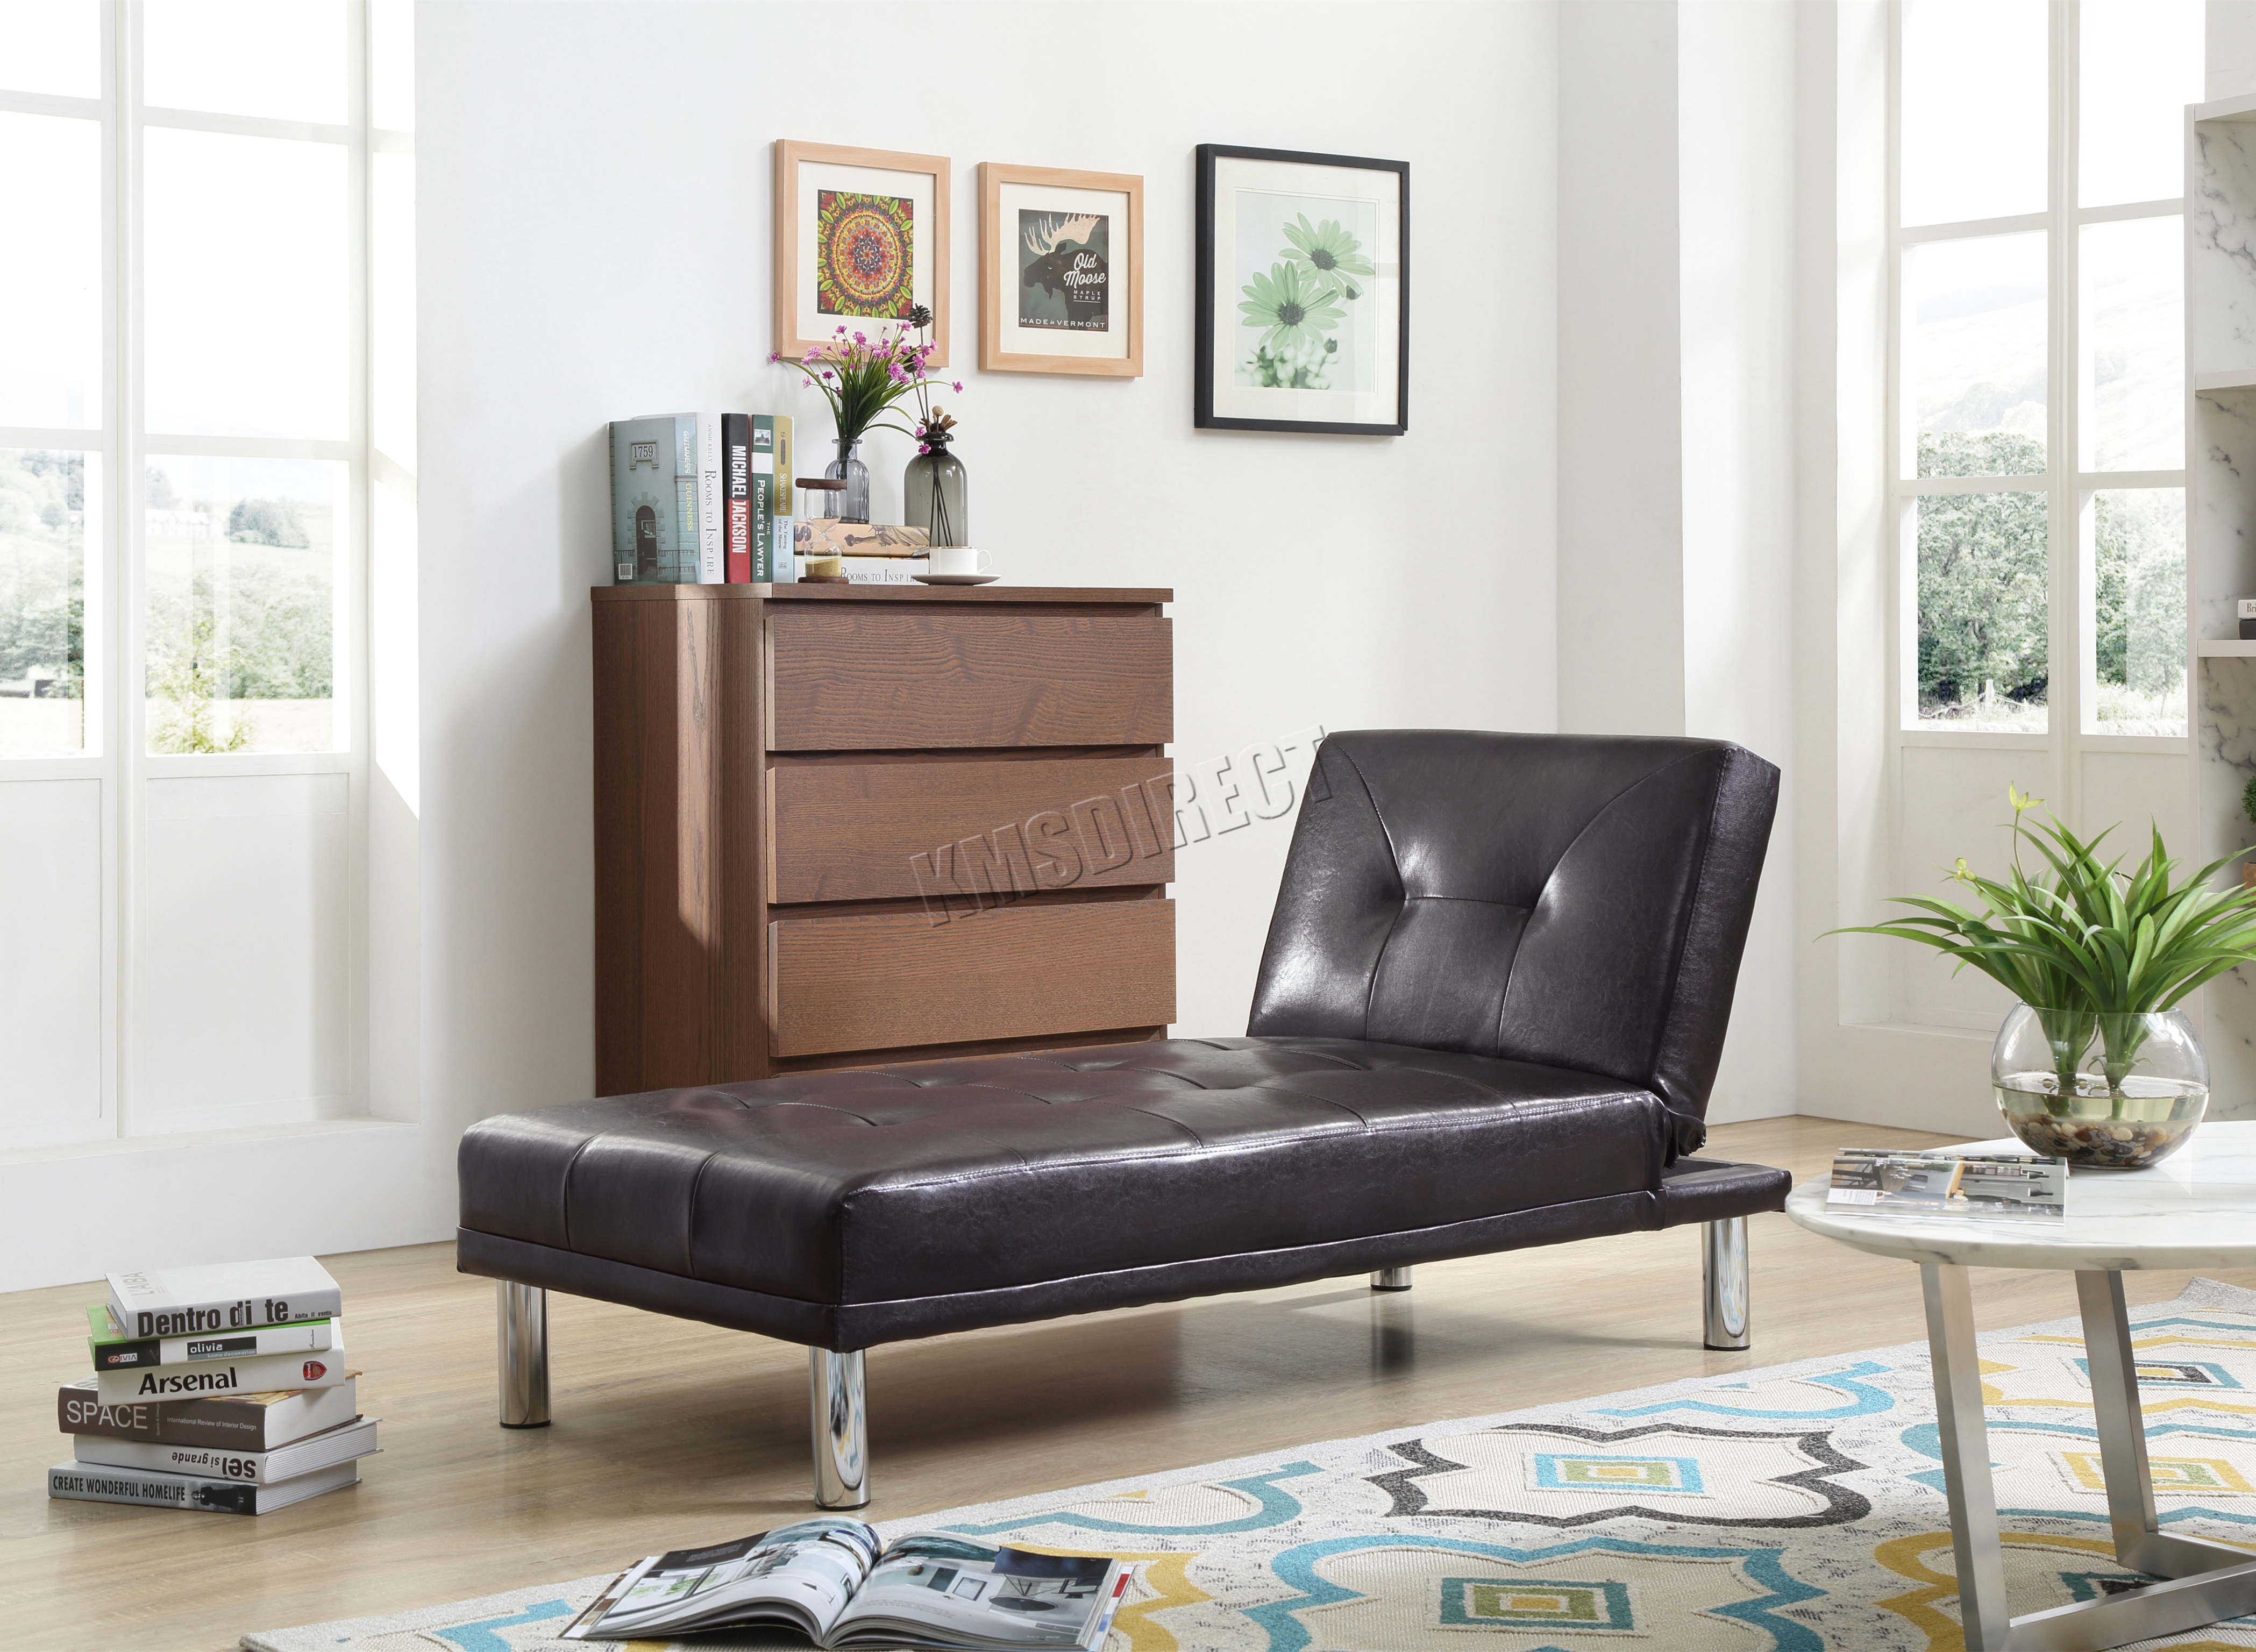 Westwood Chaise Longue Single Sofa Bed 1 Seater Couch Faux